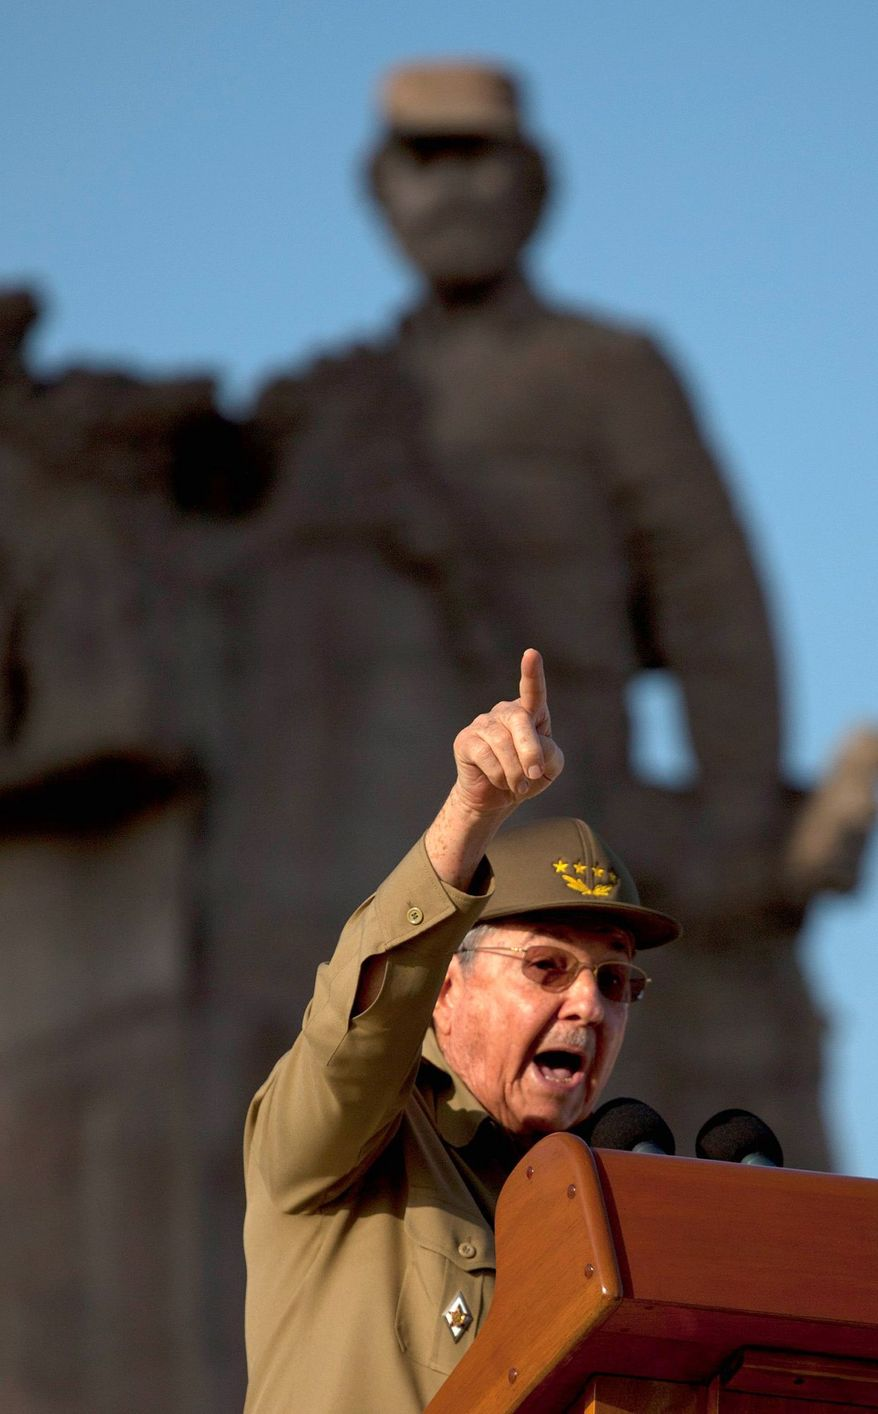 ** FILE ** In this file photo from July 26, 2012, Raul Castro speaks in Guantanamo on Revolution Day, the anniversary of the July 26, 1953, rebel attack on a military barracks led by Fidel and Raul Castro that is considered the beginning of the Cuban revolution. (Associated Press)